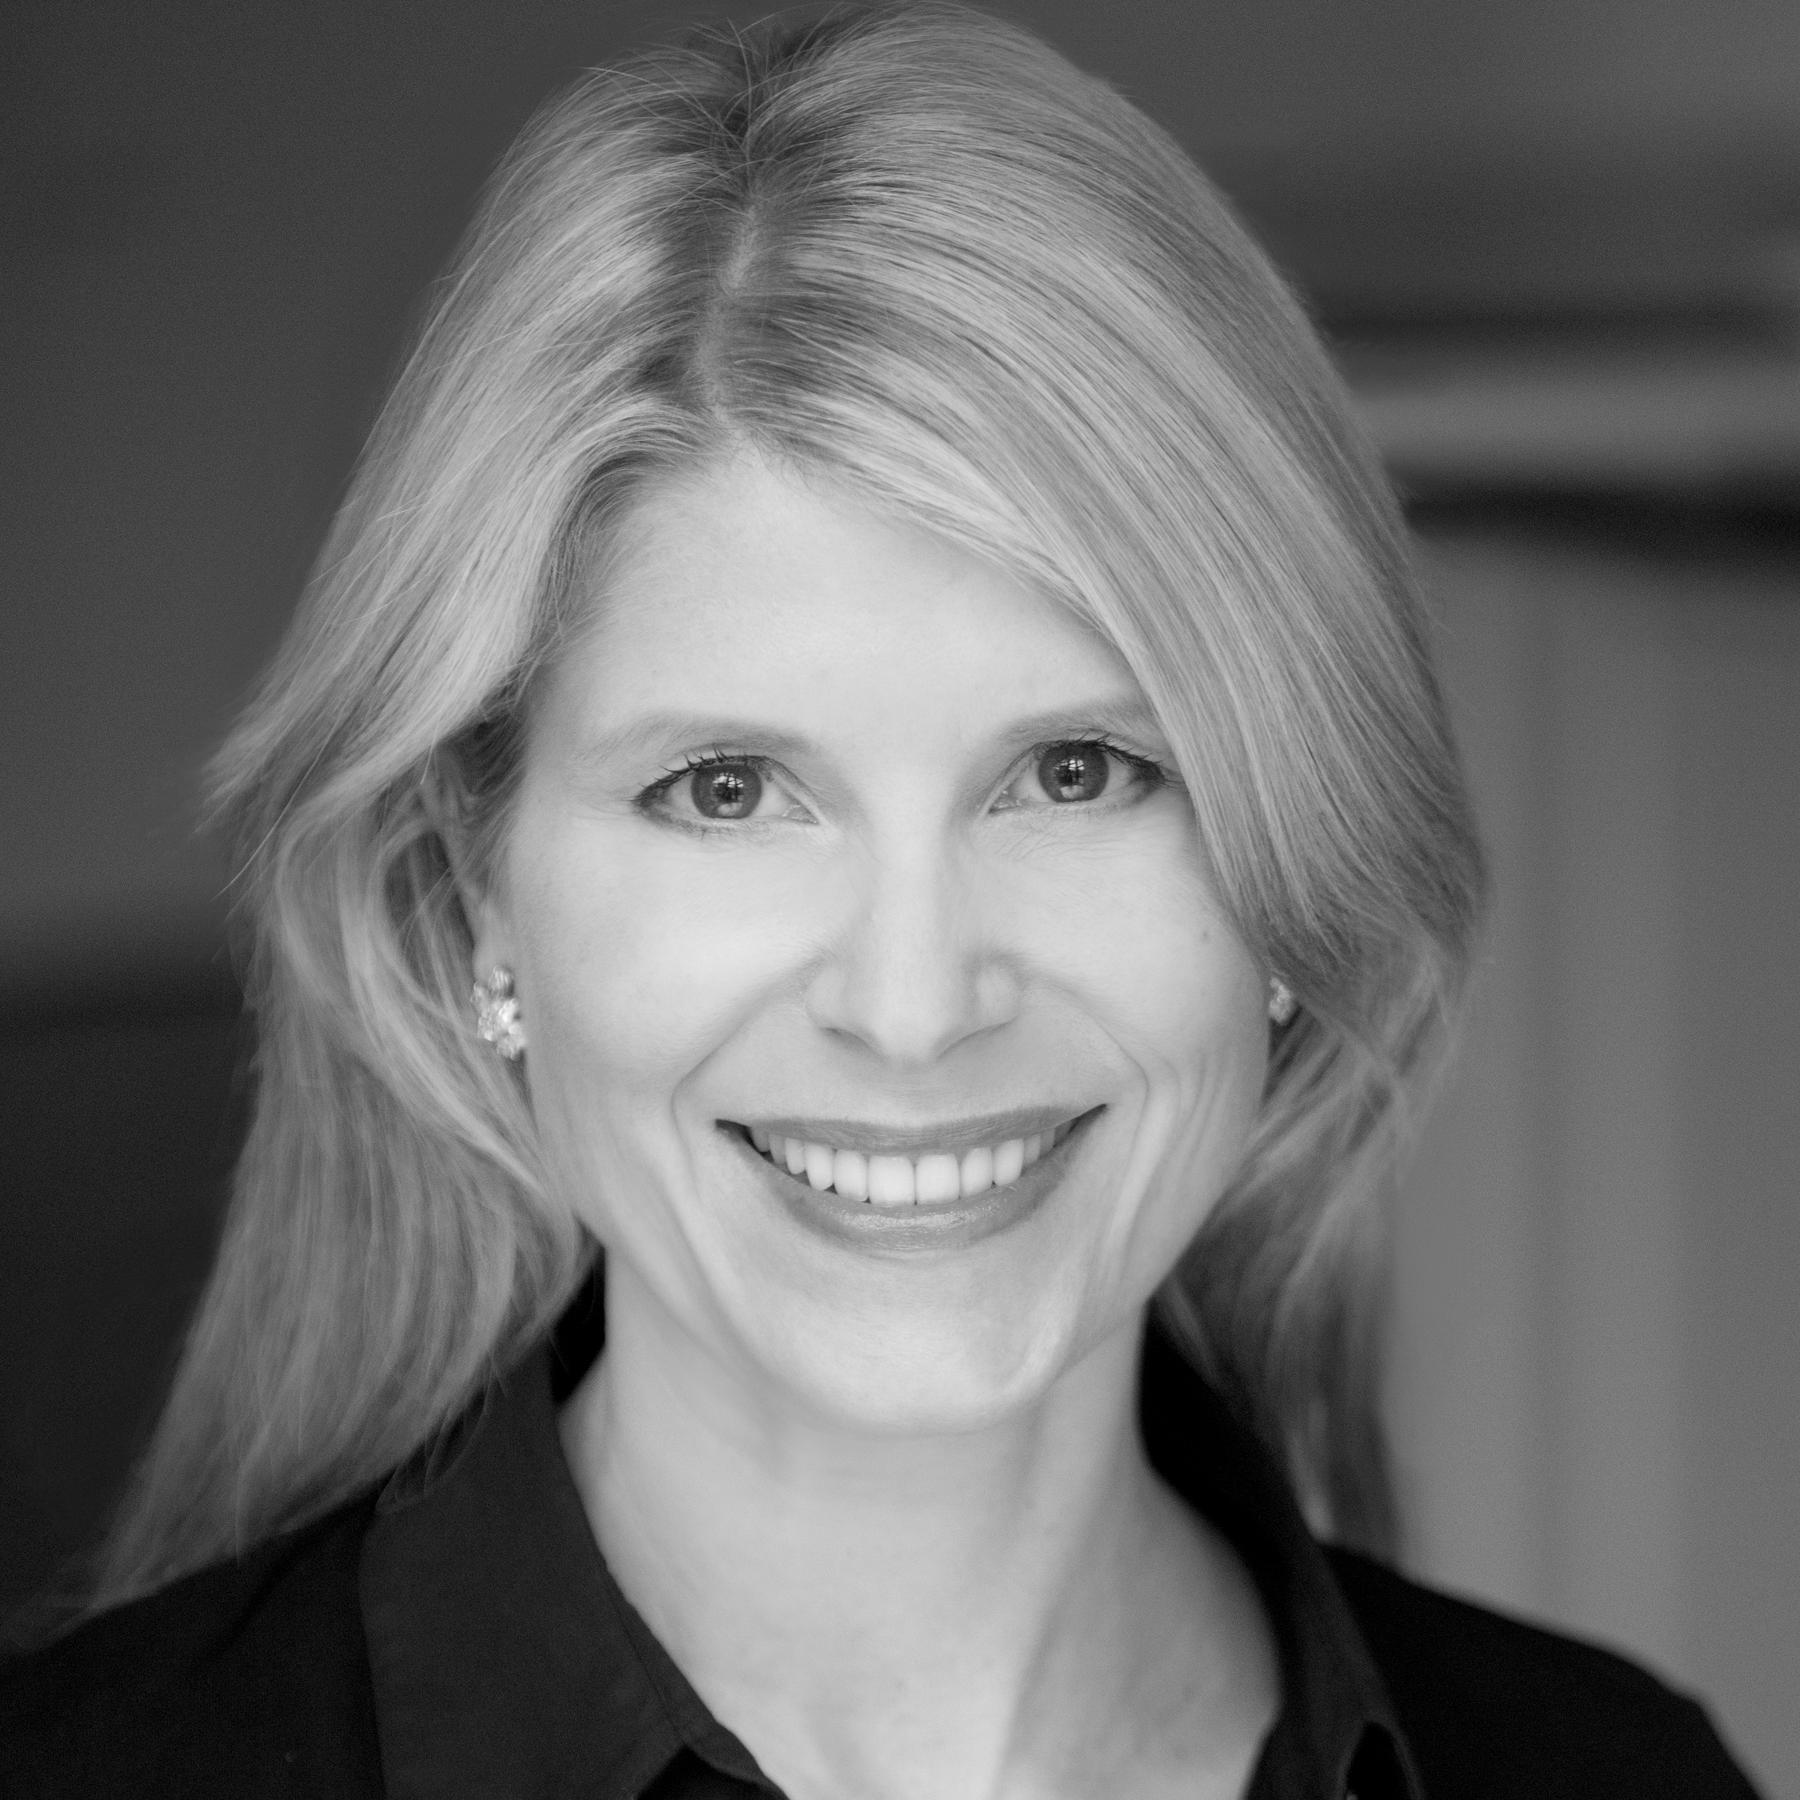 <h3>Shannon Schuyler</h3><h5>Principal, Chief Purpose Officer and Corporate Responsibility Leader, PwC, and President</h5><i>PwC Charitable Foundation</i>